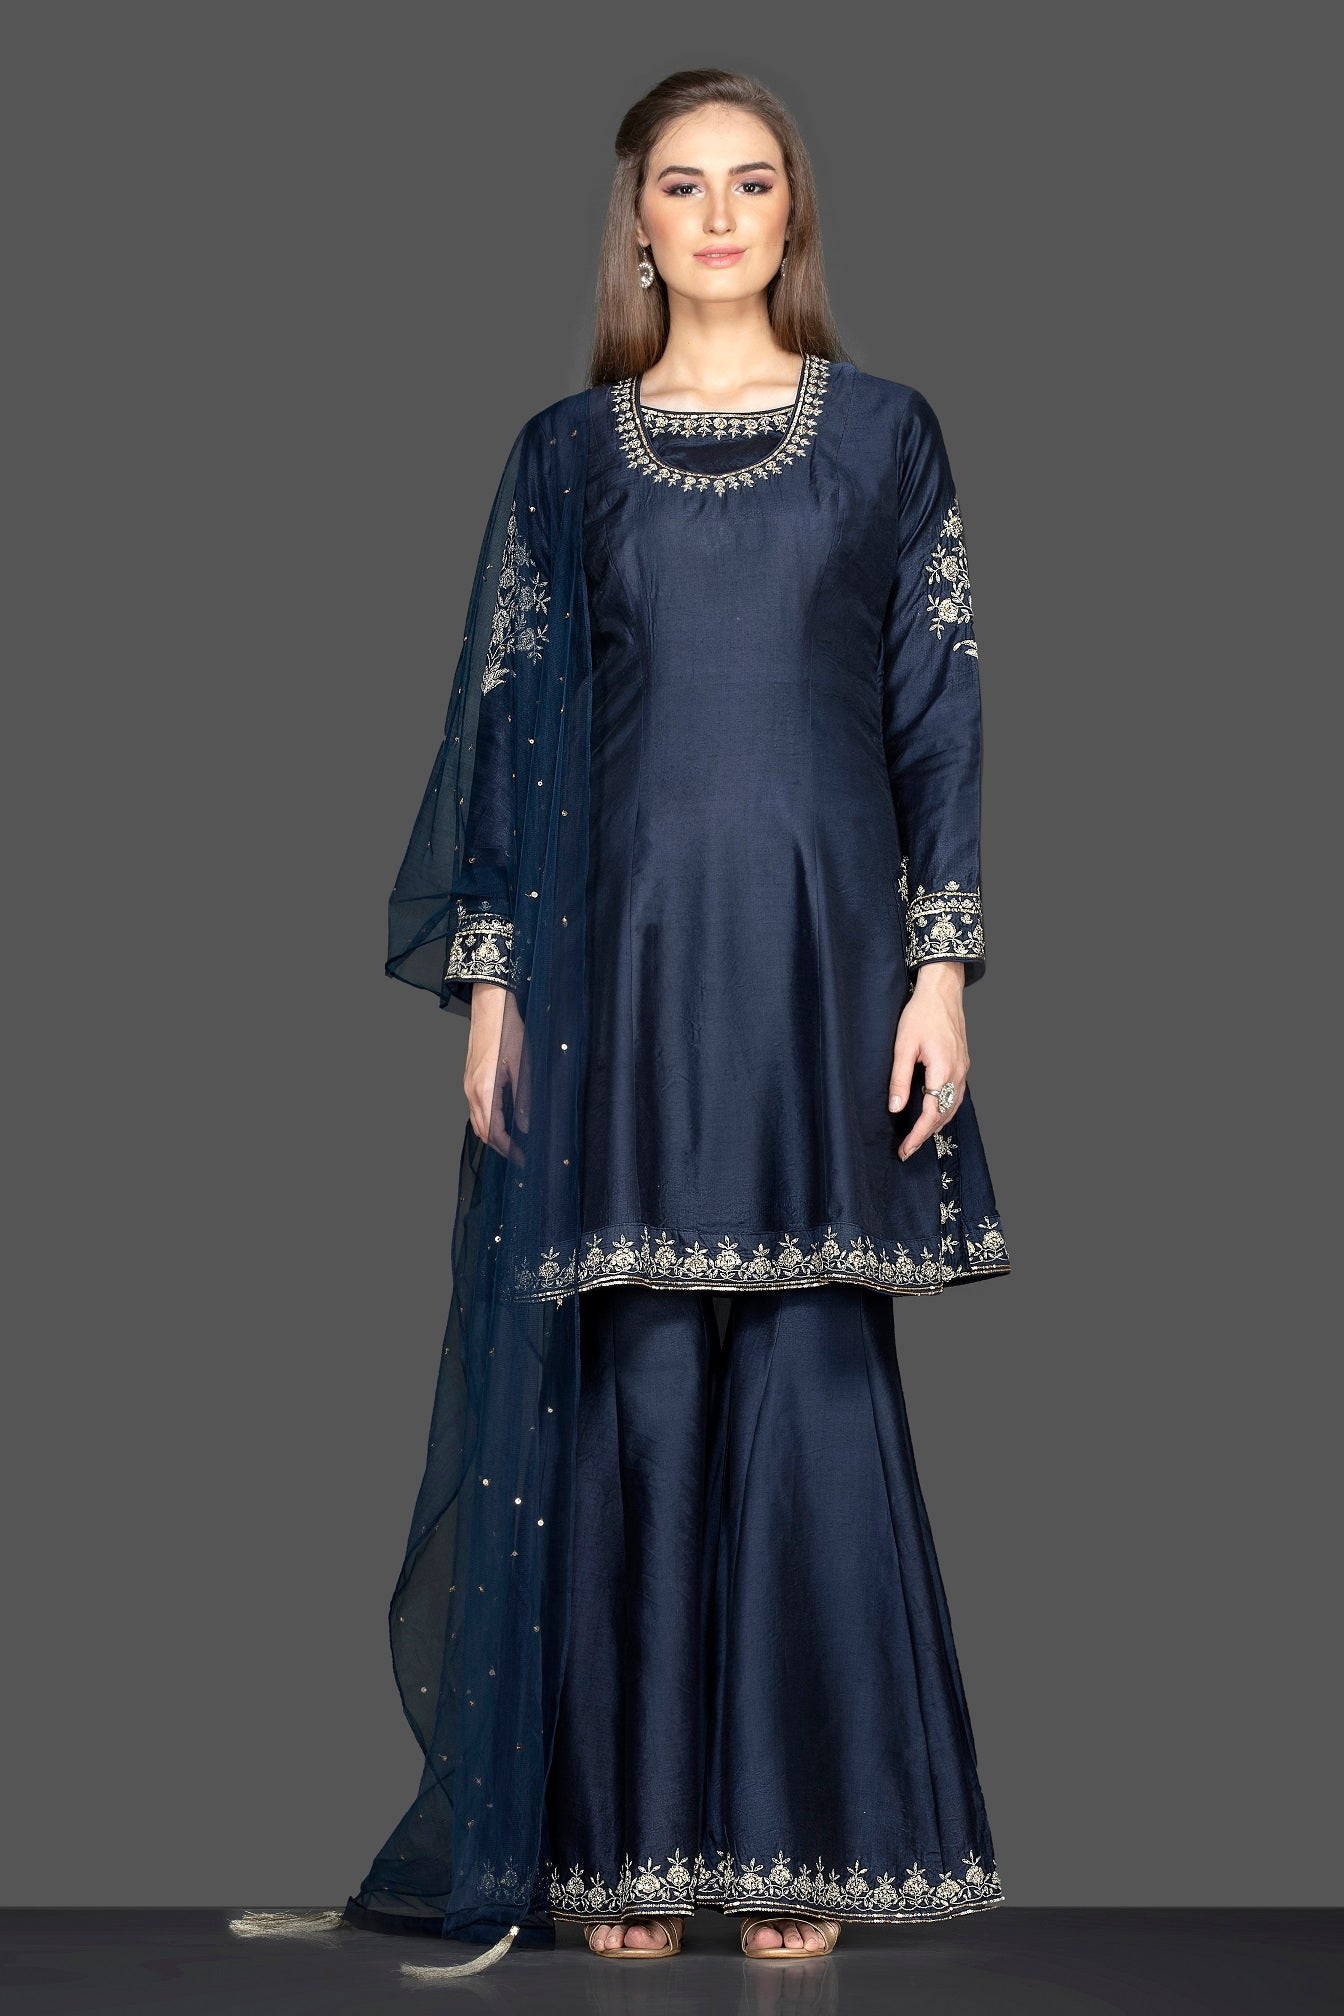 Buy stunning navy blue embroidered sharara suit online in USA with dupatta. Flaunt ethnic fashion on weddings and festive occasions with latest designer lehengas, Indian dresses, traditional Anarkali suits from Pure Elegance Indian clothing store in USA.-full view